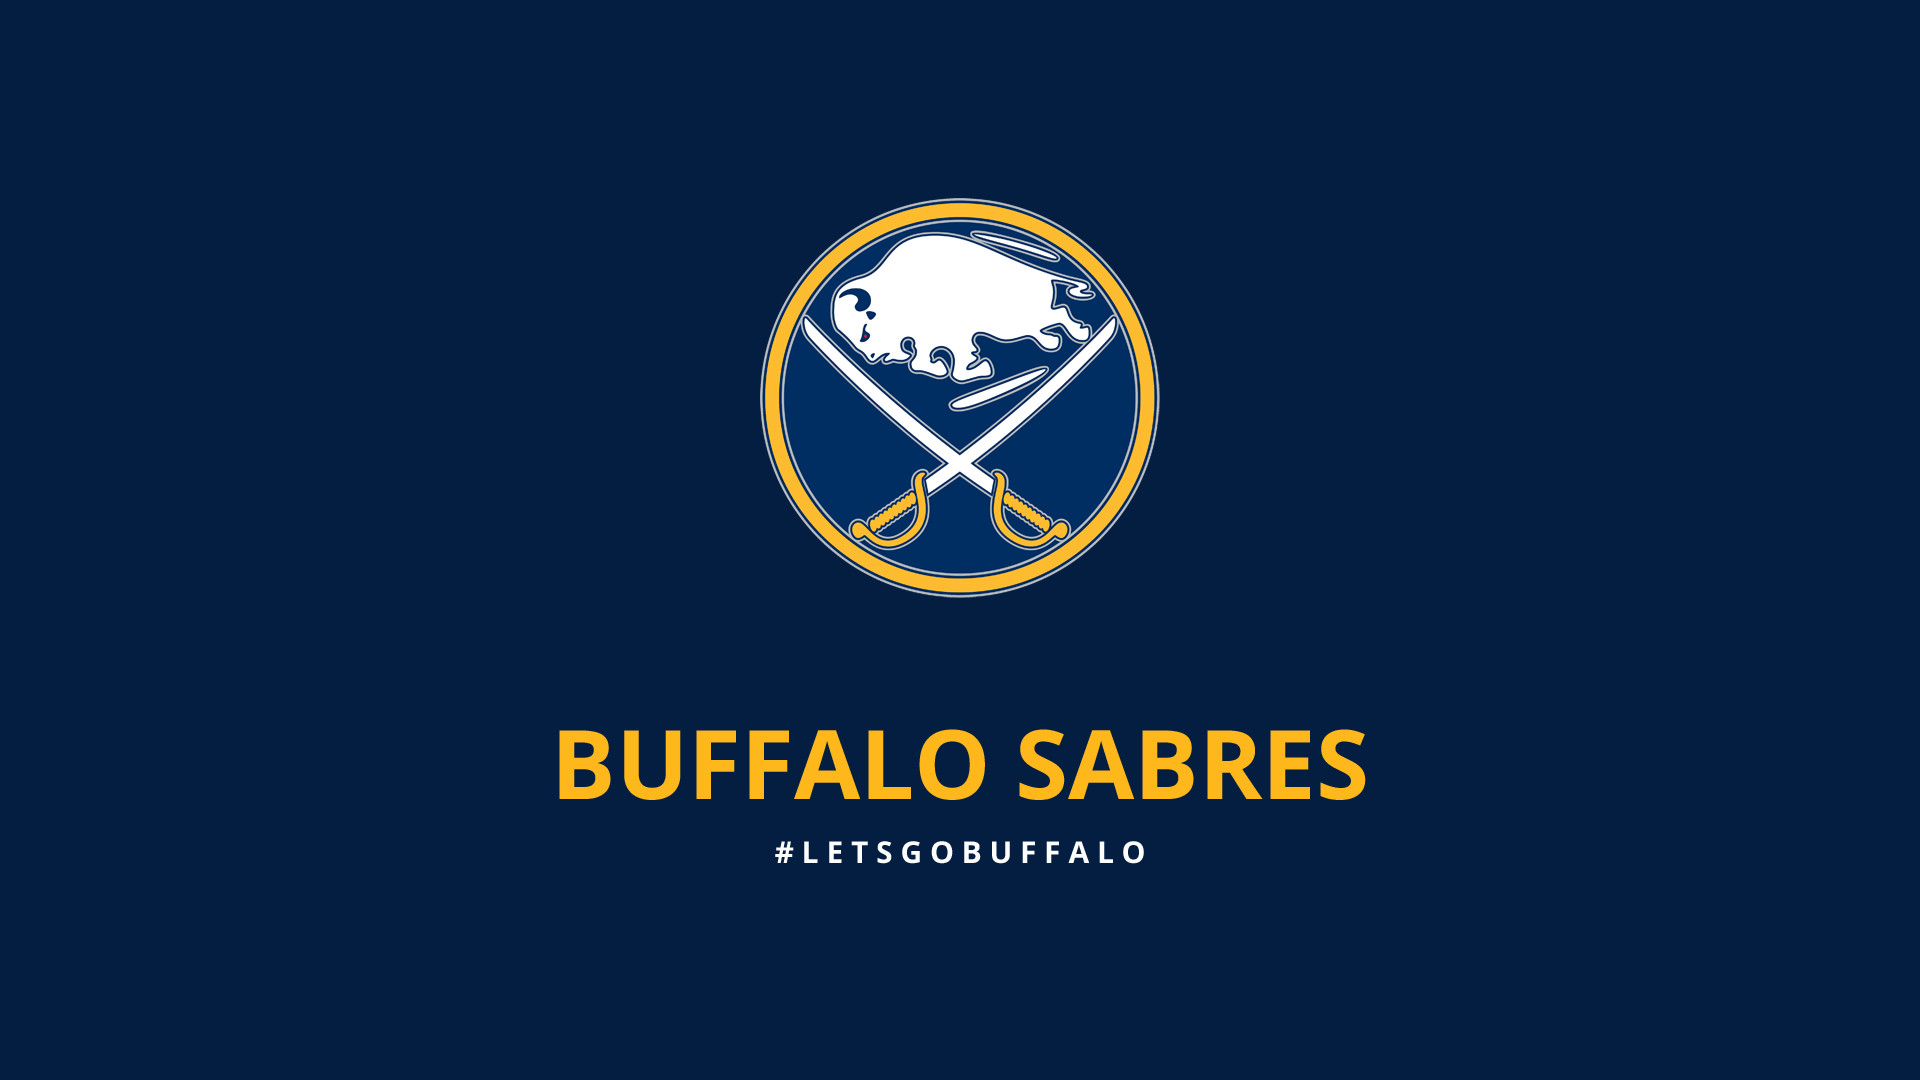 1920x1080 Minimalist Buffalo Sabres wallpaper by lfiore on DeviantArt